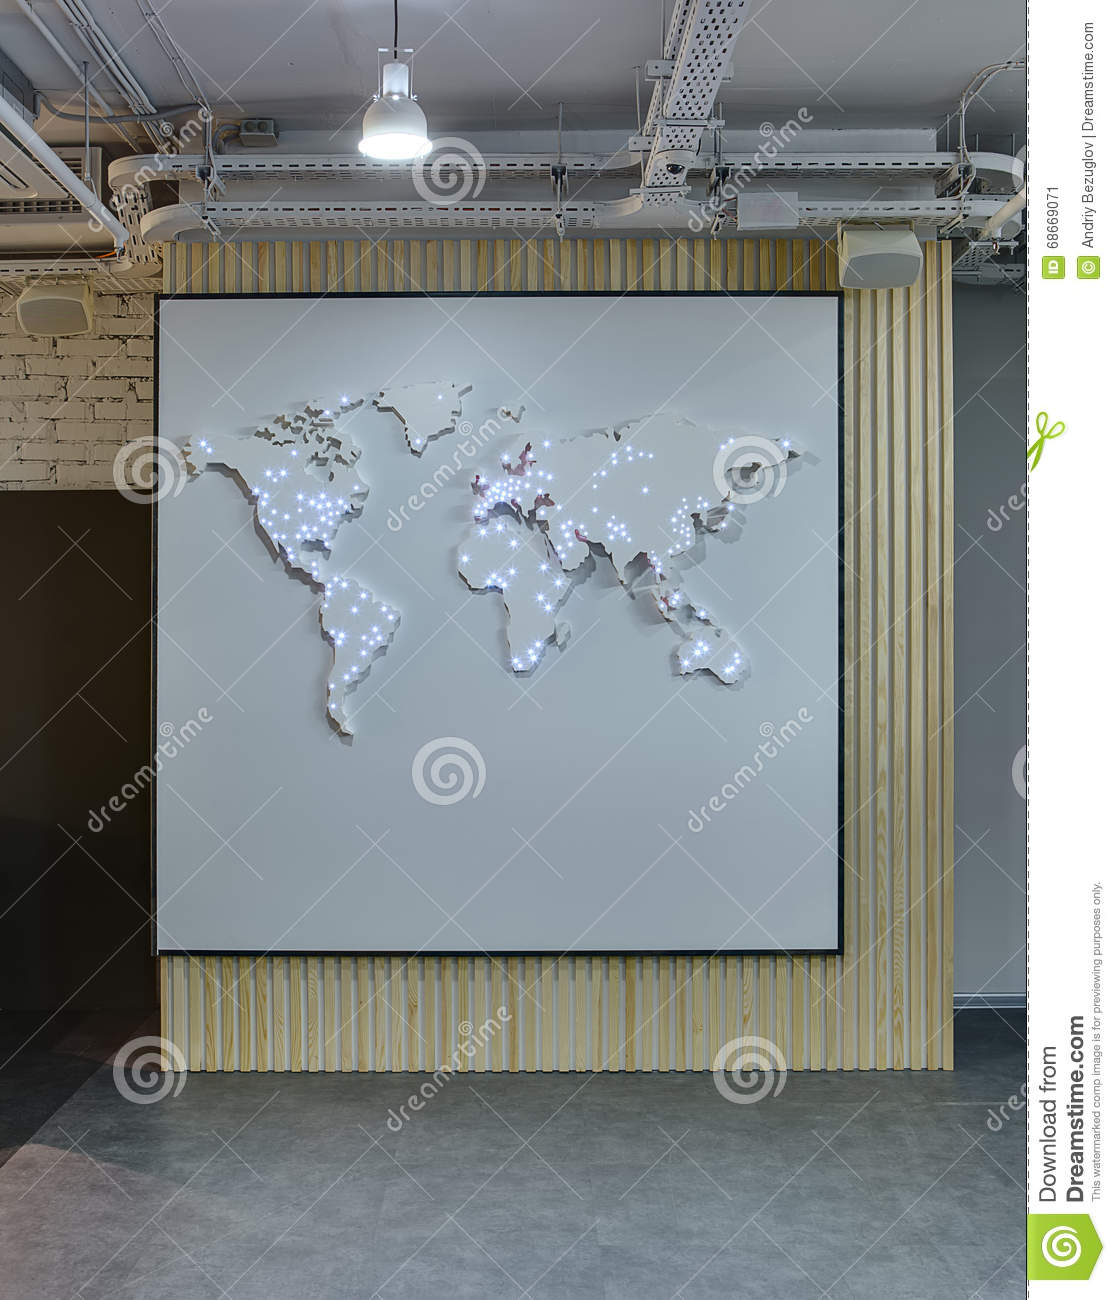 World map on the wall stock image image of loft business 68669071 world map on the wall gumiabroncs Gallery